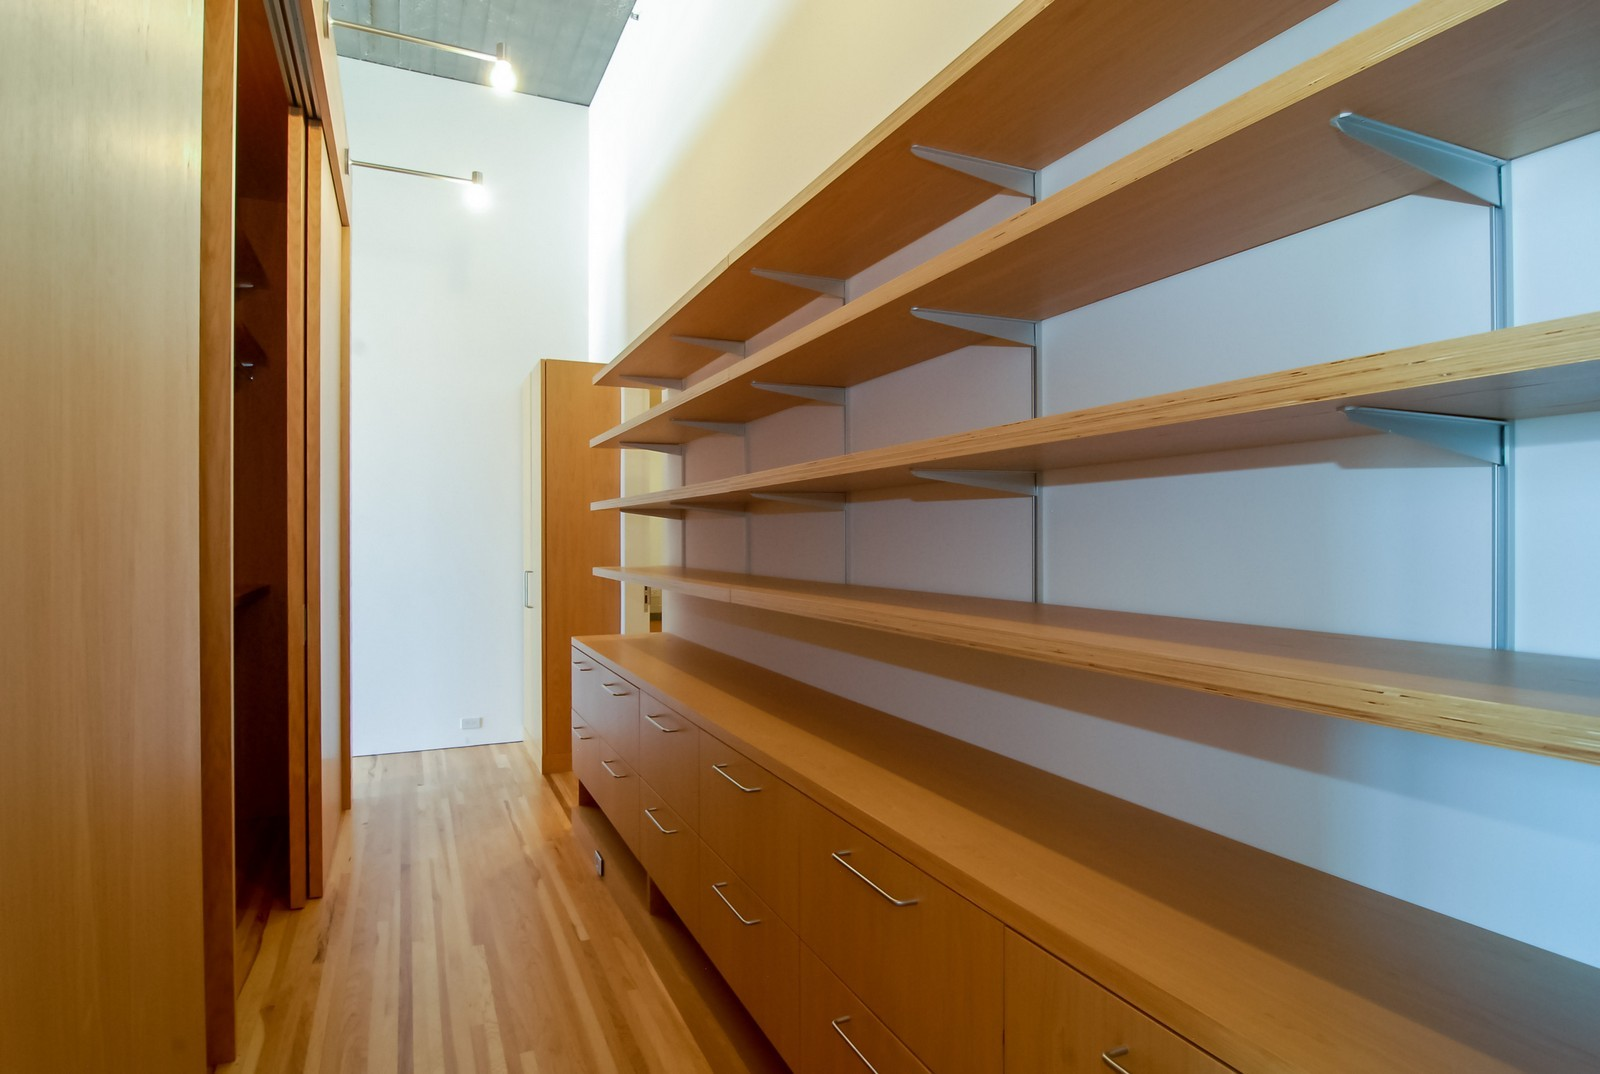 Real Estate Photography - 900 N Kingsbury St, Unit 950, Chicago, IL, 60654 - Master Bedroom Closet